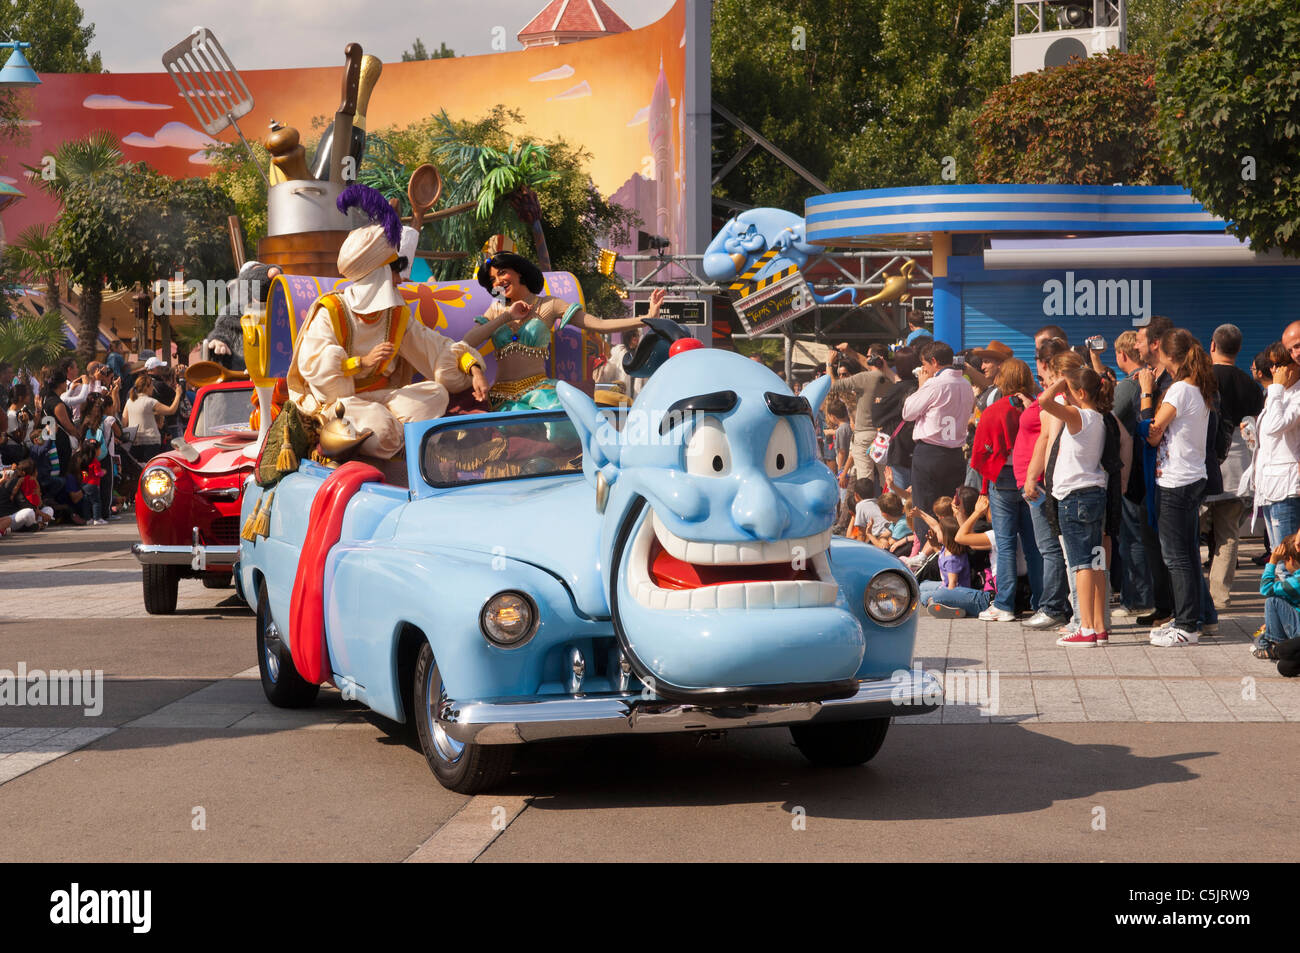 The Stars \'n\' Cars parade with Alladin at Disneyland Paris in ...